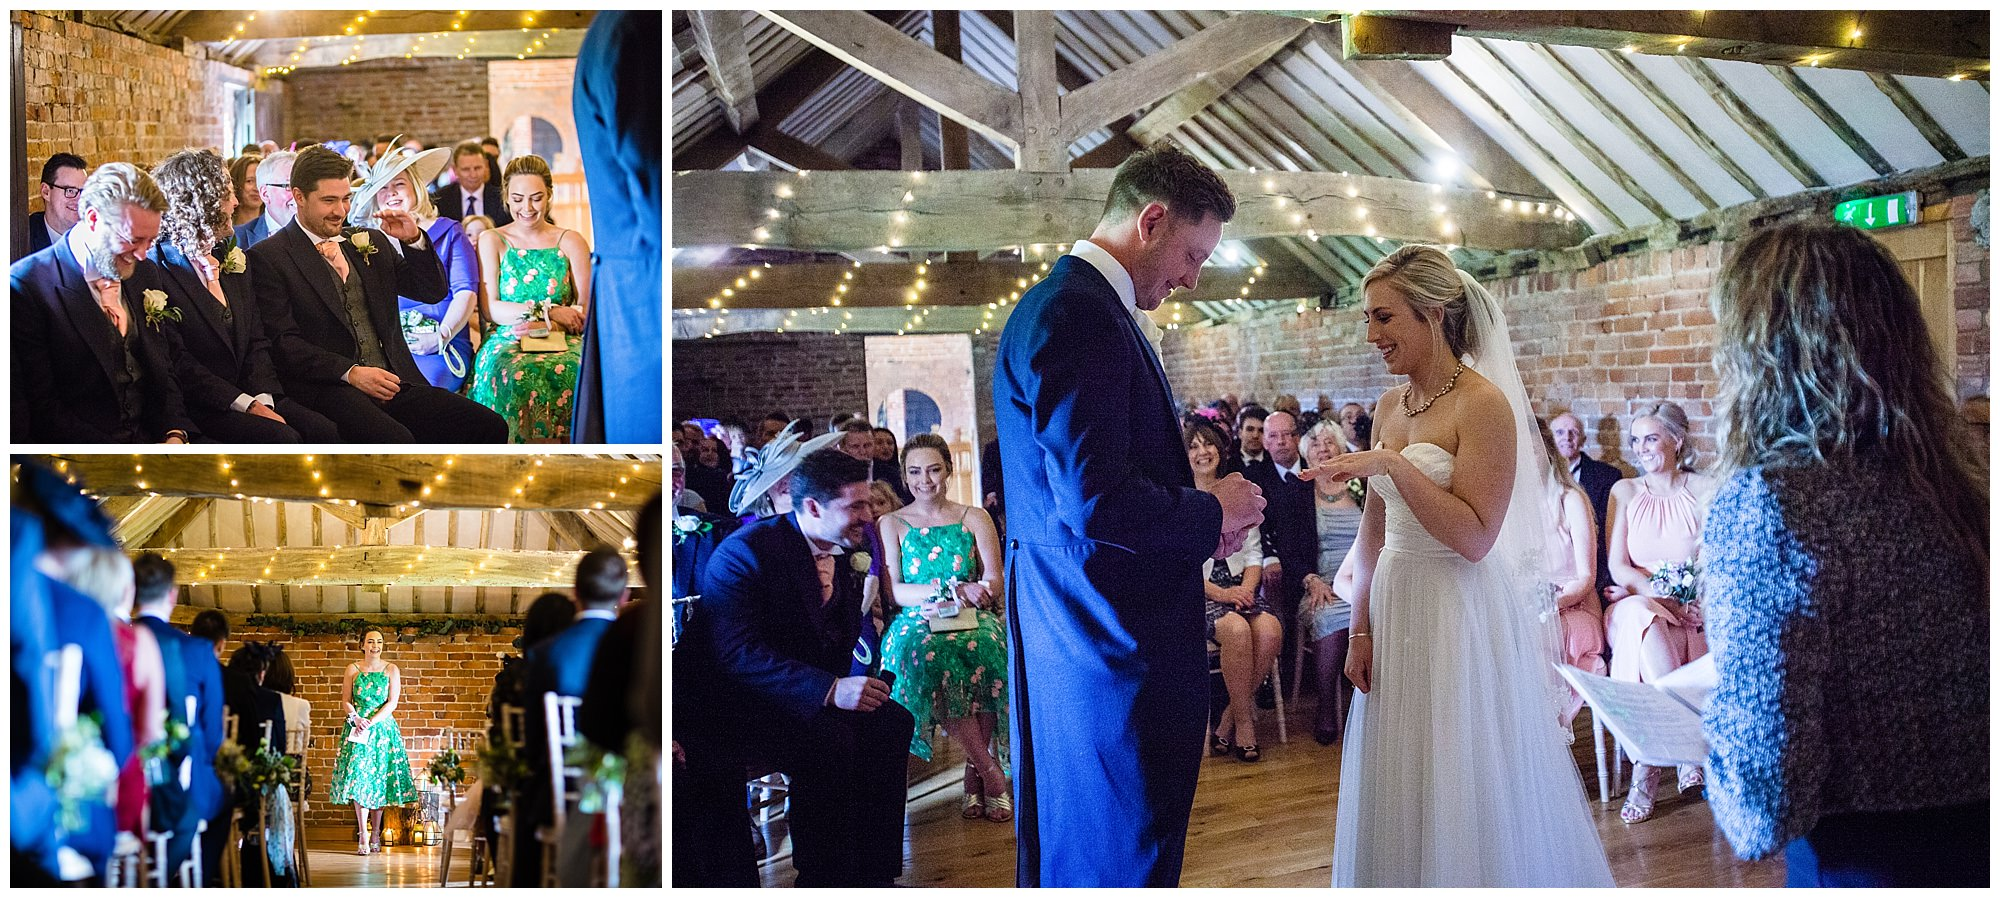 exchange of rings - soulton hall spring wedding